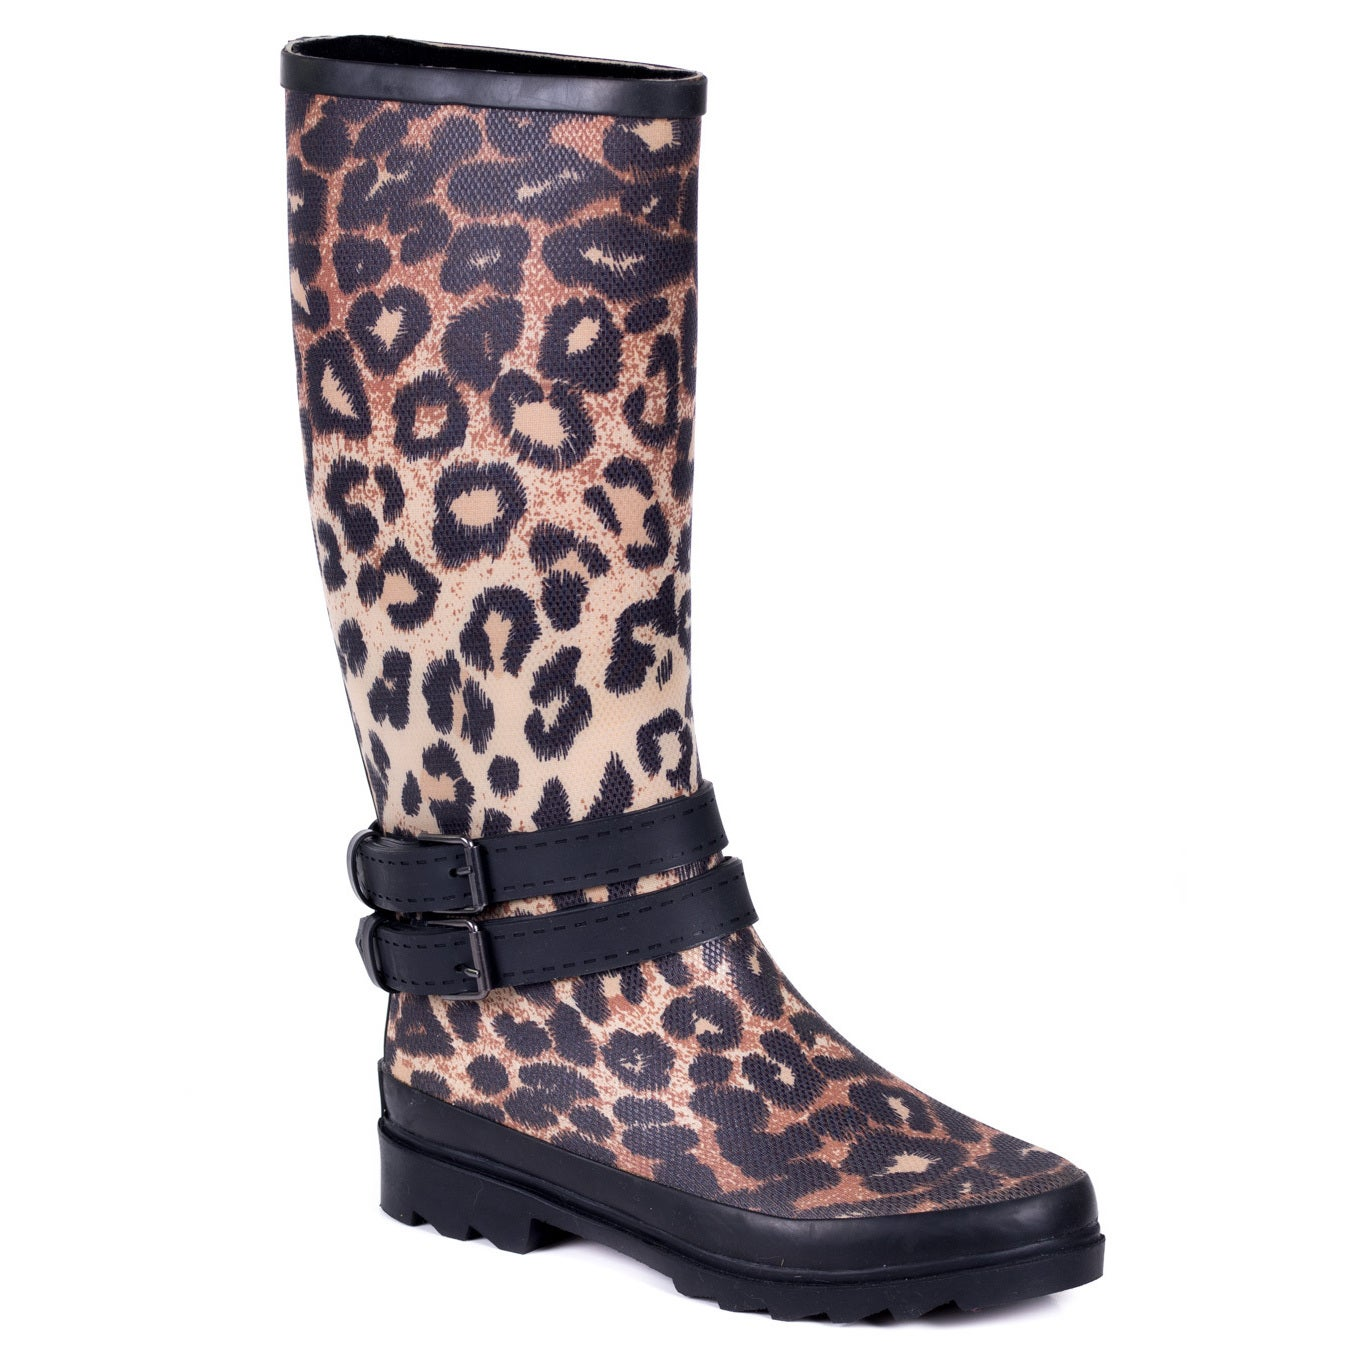 1a4b1799fdd8 Shop Forever Couture Women's Cloth Coating Leopard Print Rubber Rain Boots  - Free Shipping Today - Overstock - 10907467